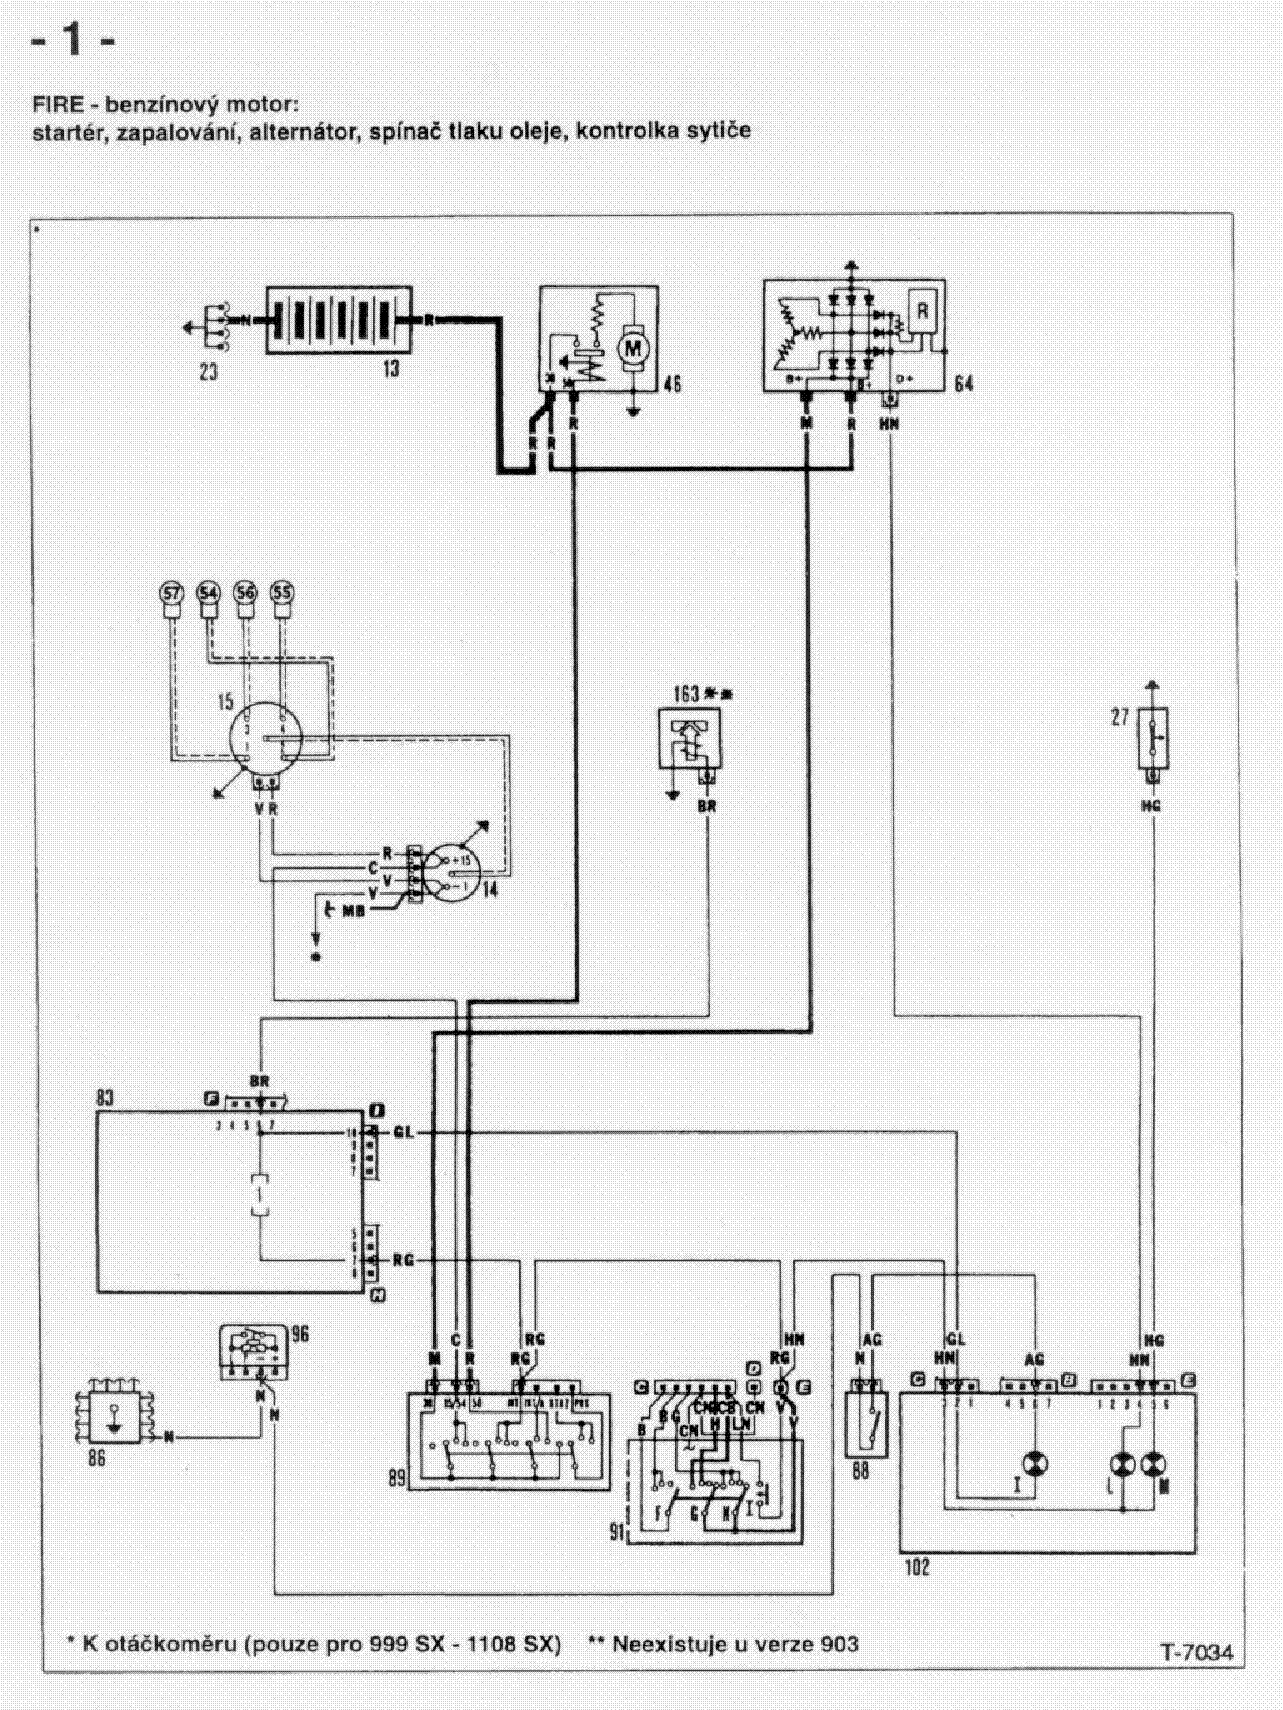 Fiat Tipo Wiring Diagram Service Manual Download  Schematics  Eeprom  Repair Info For